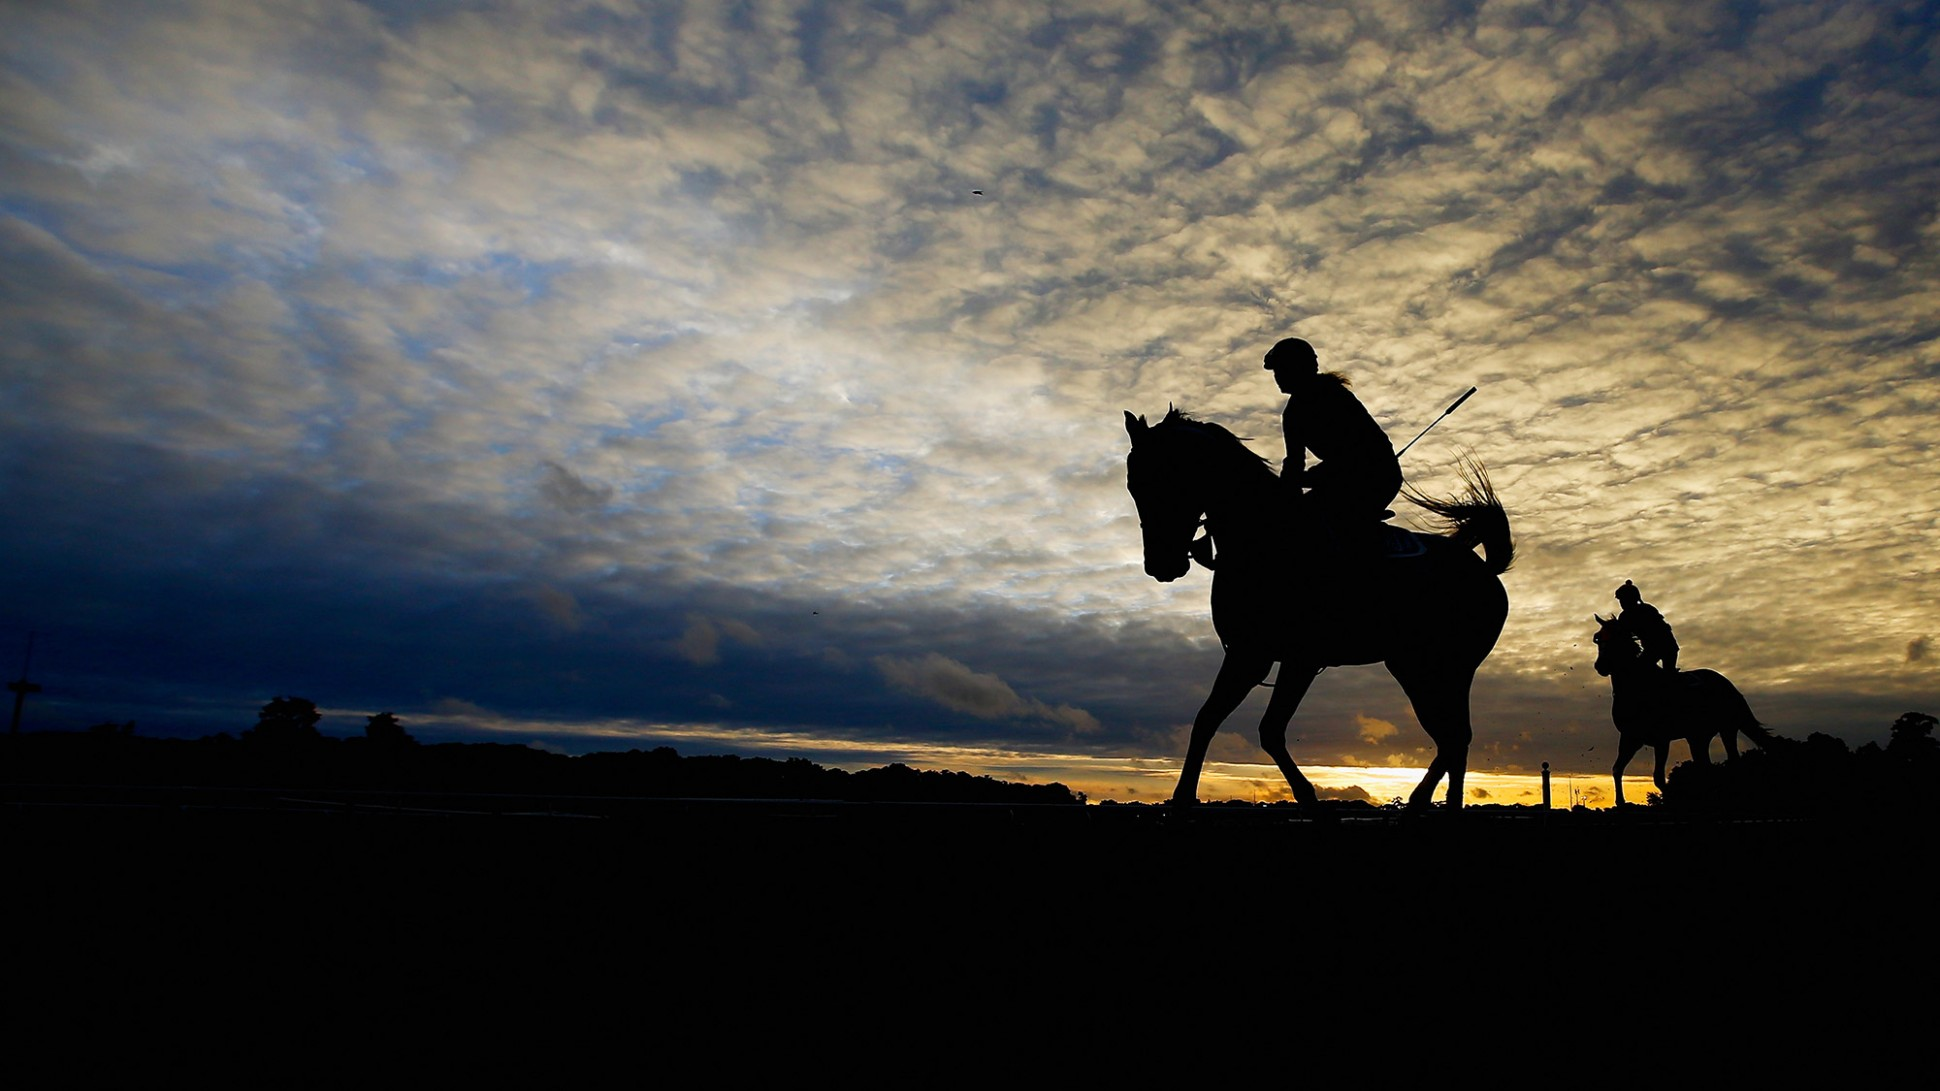 99574 download wallpaper Sports, Belmont Stakes, 2015, Horse Racing, Horses, Silhouette, Sky screensavers and pictures for free